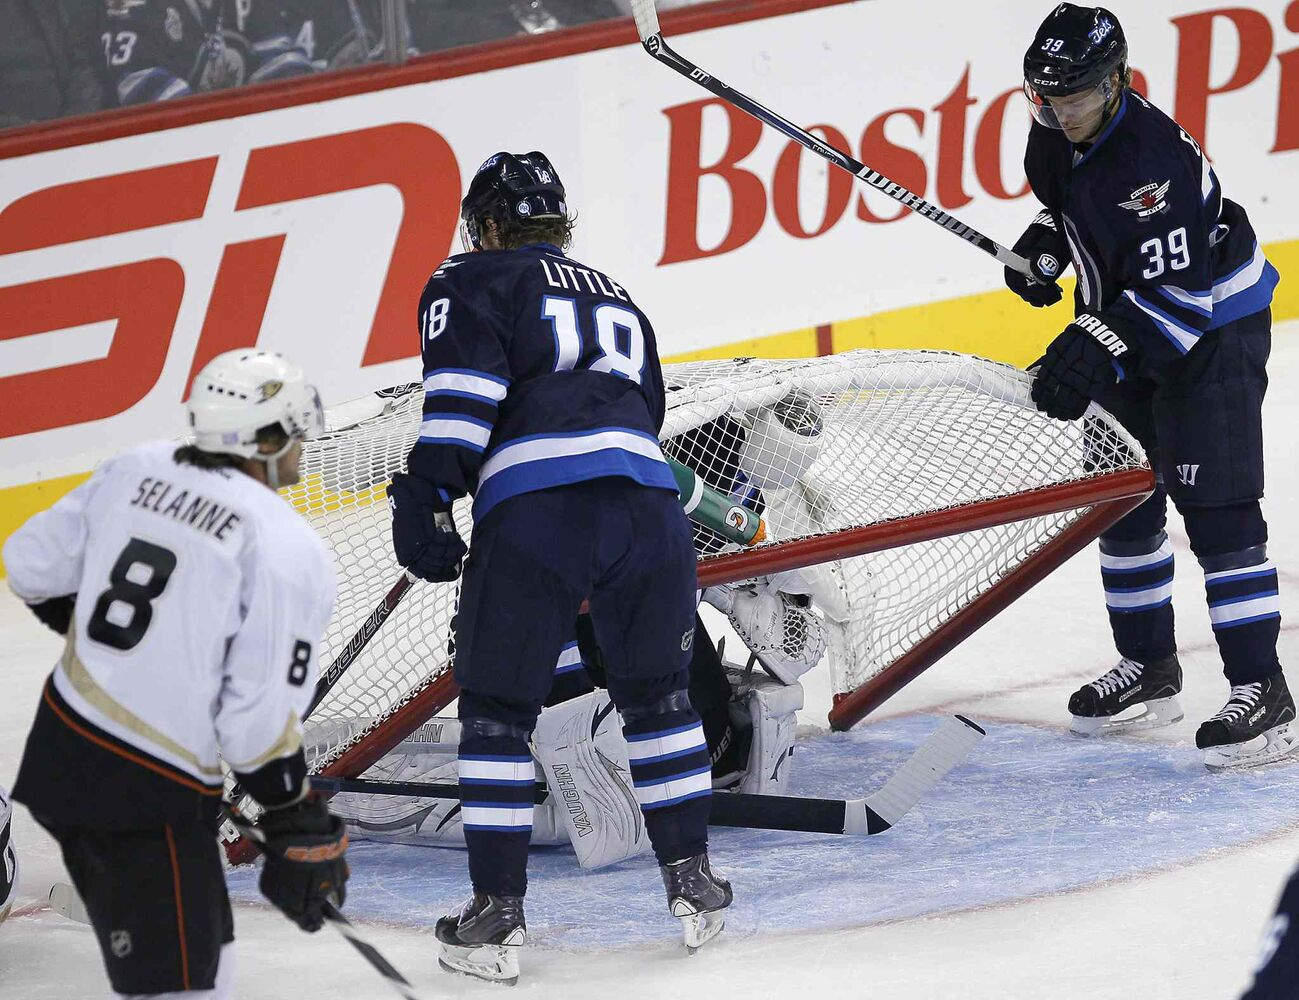 Winnipeg Jets' Bryan Little (18) and Toby Enstrom lift the net off goaltender Ondrej Pavelec in the first period as the Ducks' Teemu Selanne cruises past. (JOHN WOODS / WINNIPEG FREE PRESS)